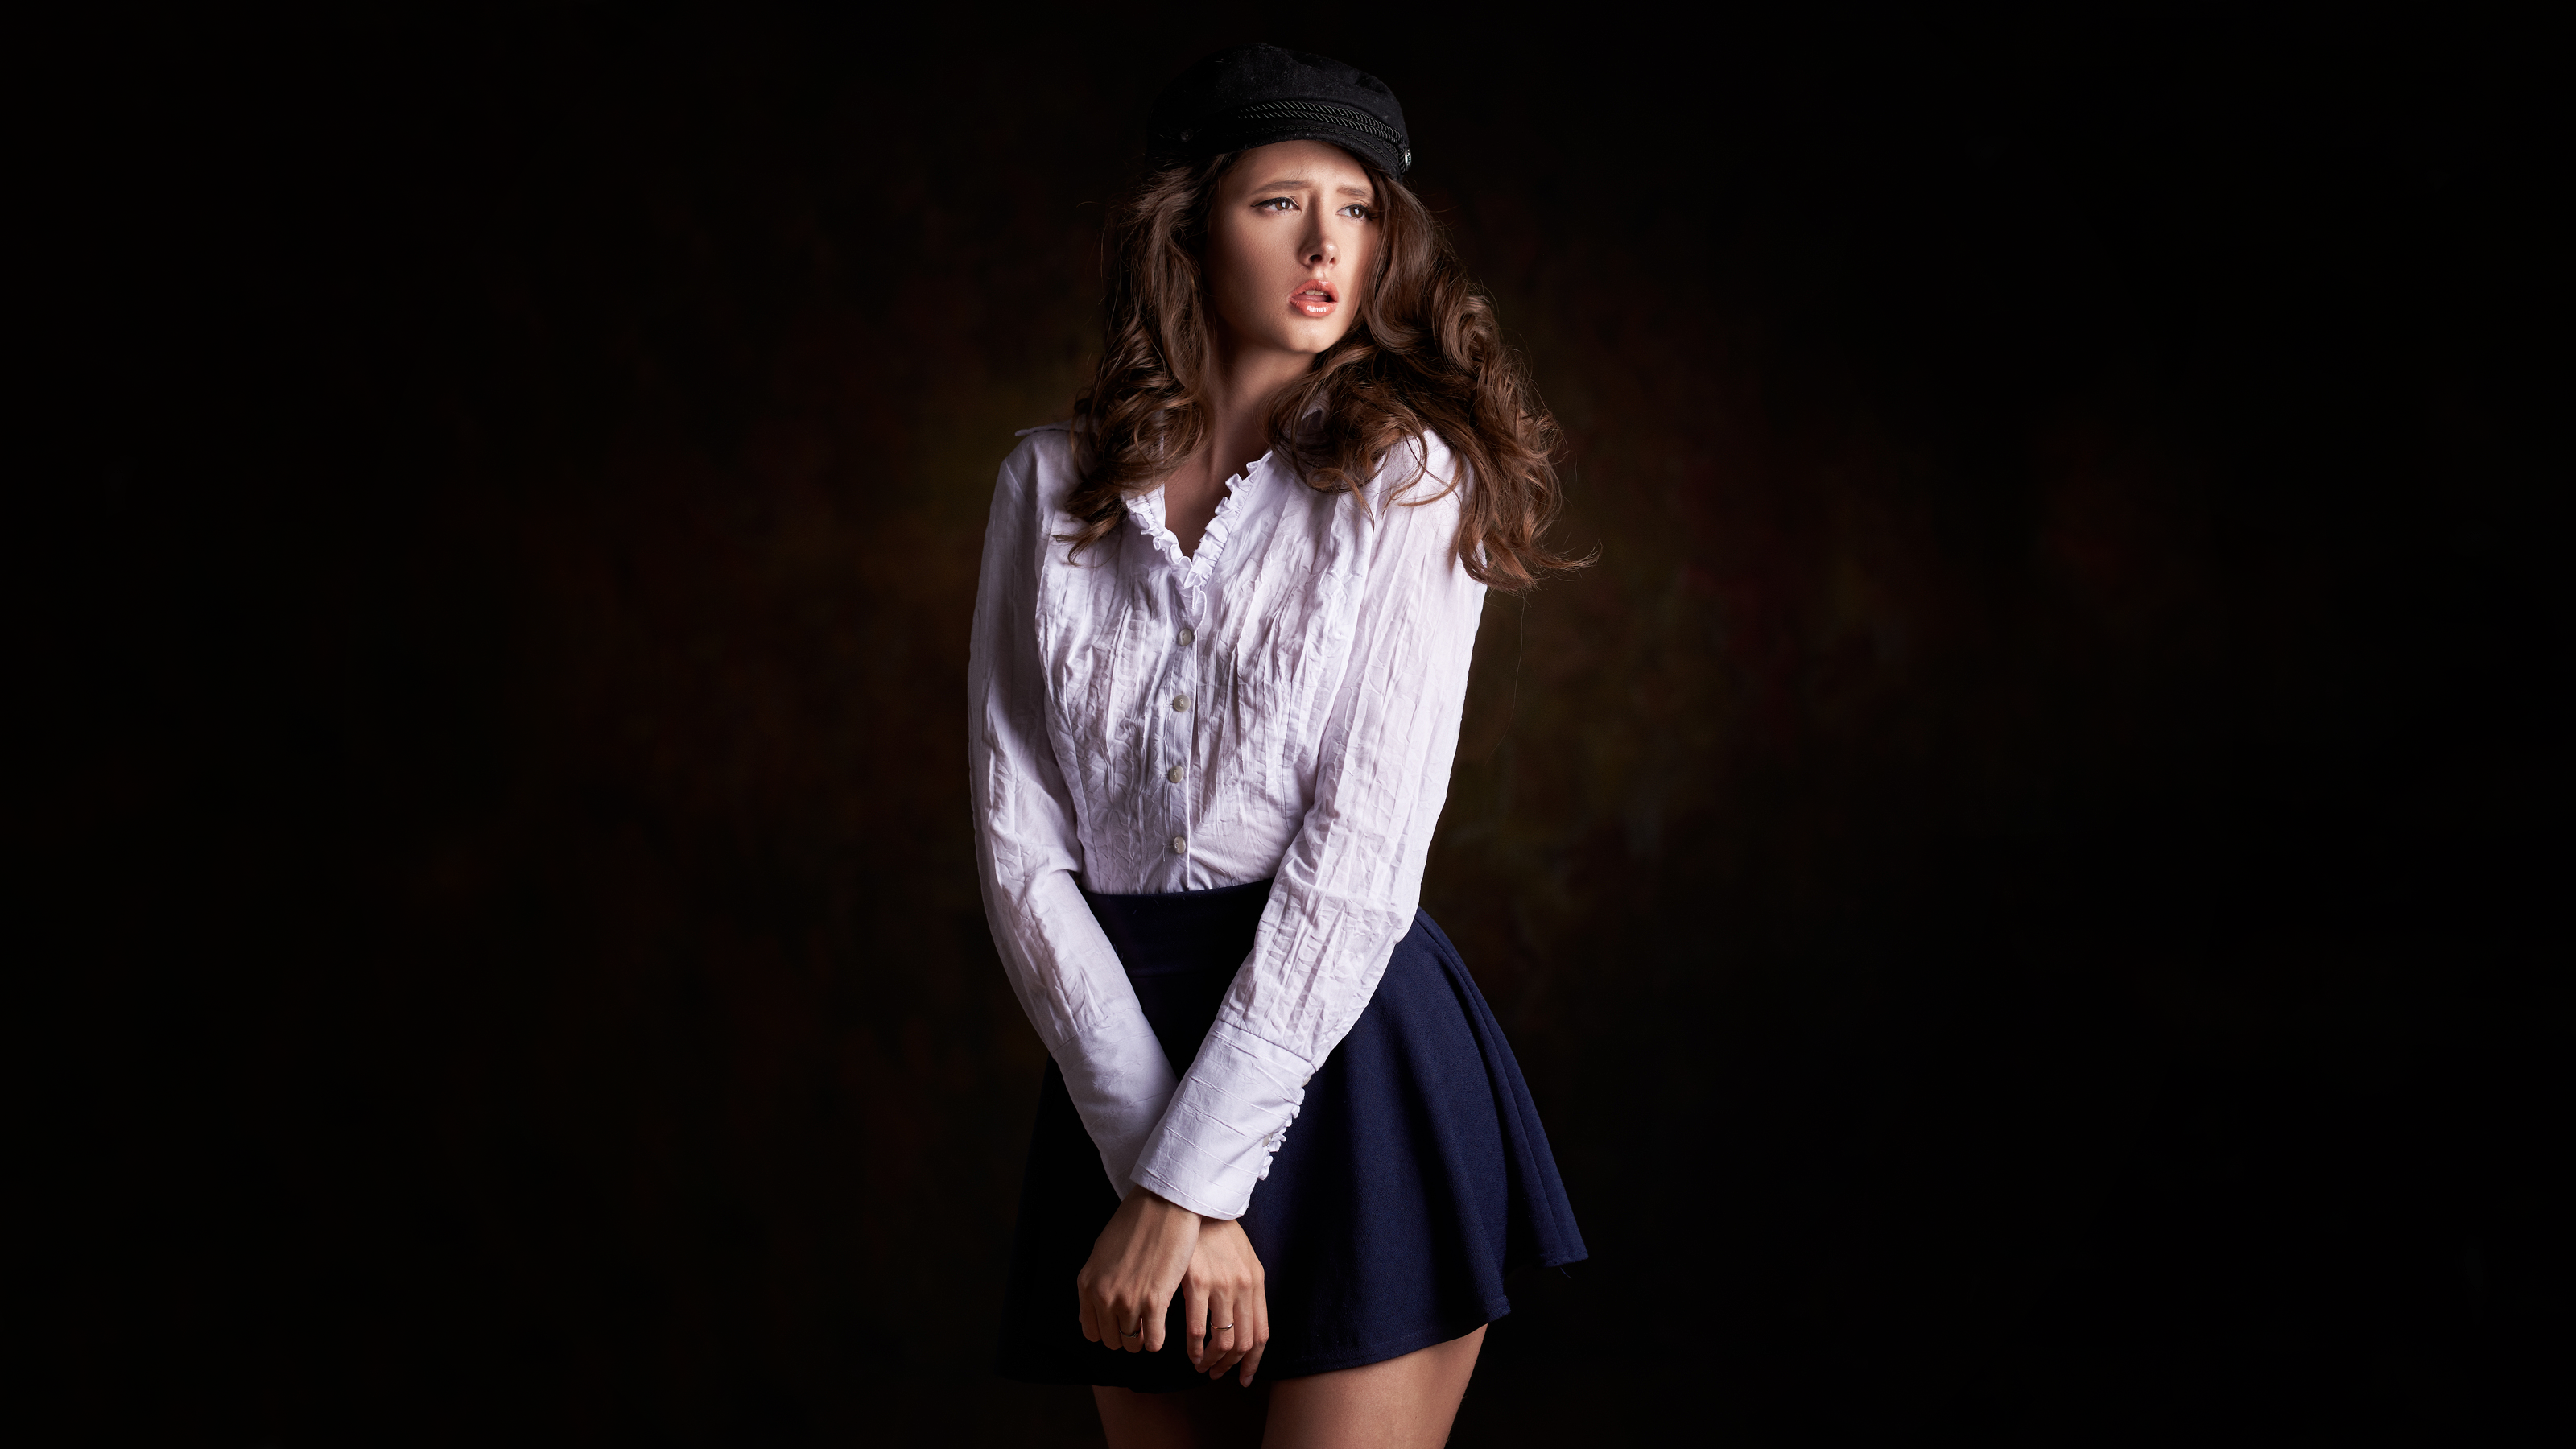 People 3200x1800 Disha Shemetova women model brunette long hair wavy hair berets brown eyes looking away pink lipstick open mouth shirt miniskirt simple background dark background brown background dark black brown vignette portrait photography standing white shirt Max Pyzhik